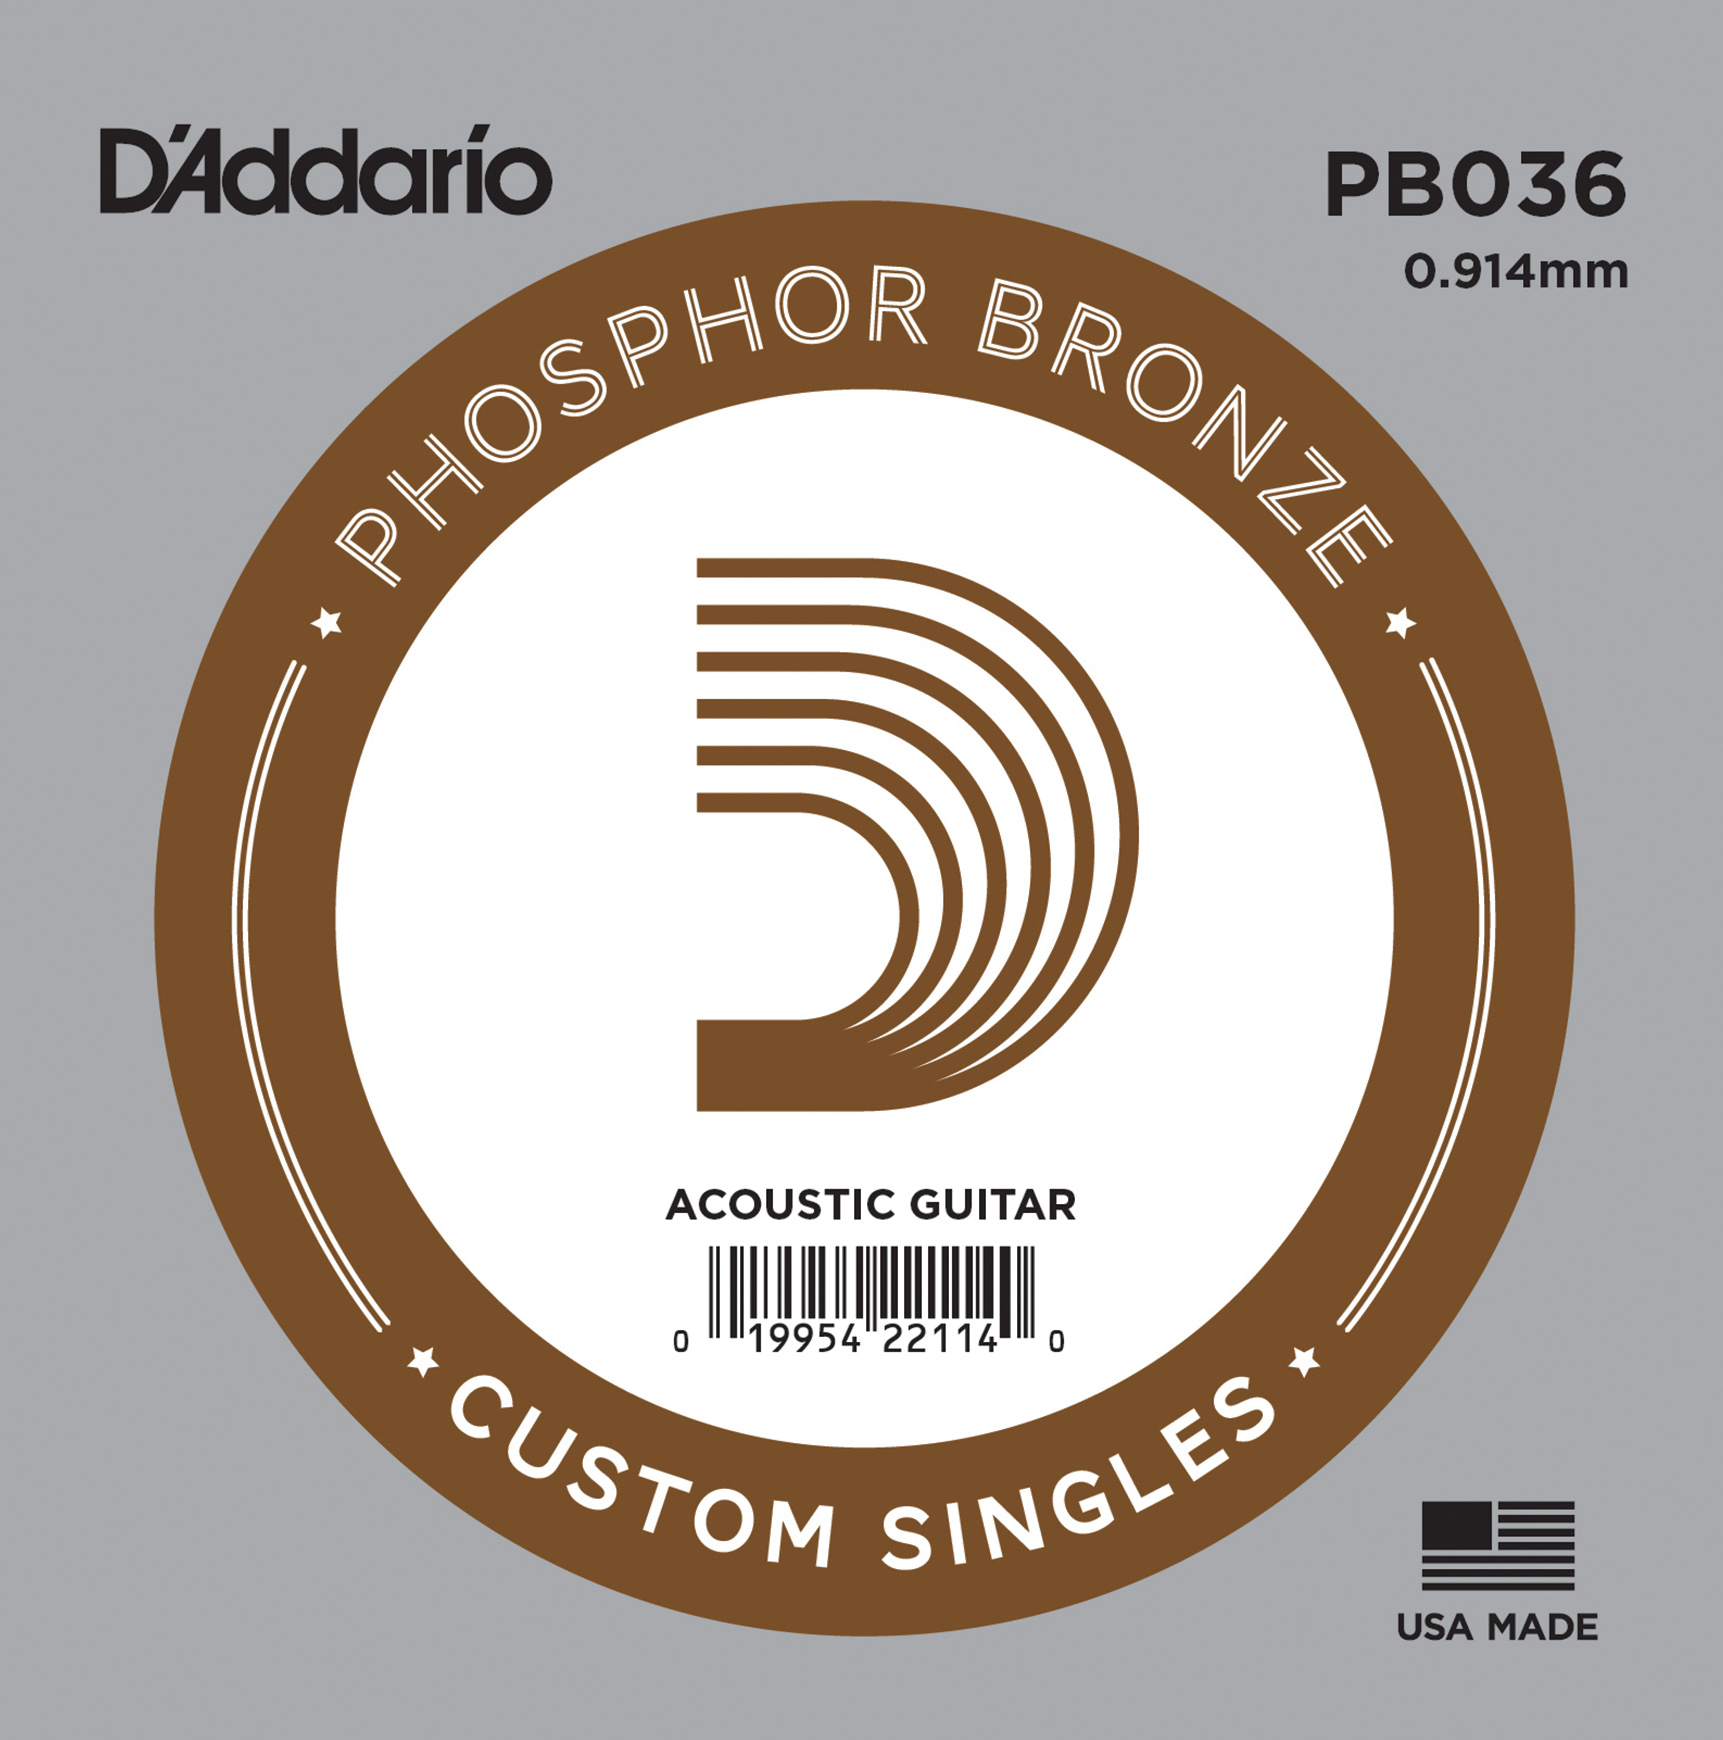 DADD SINGLE PHOSPHOR BRONZE WND 036